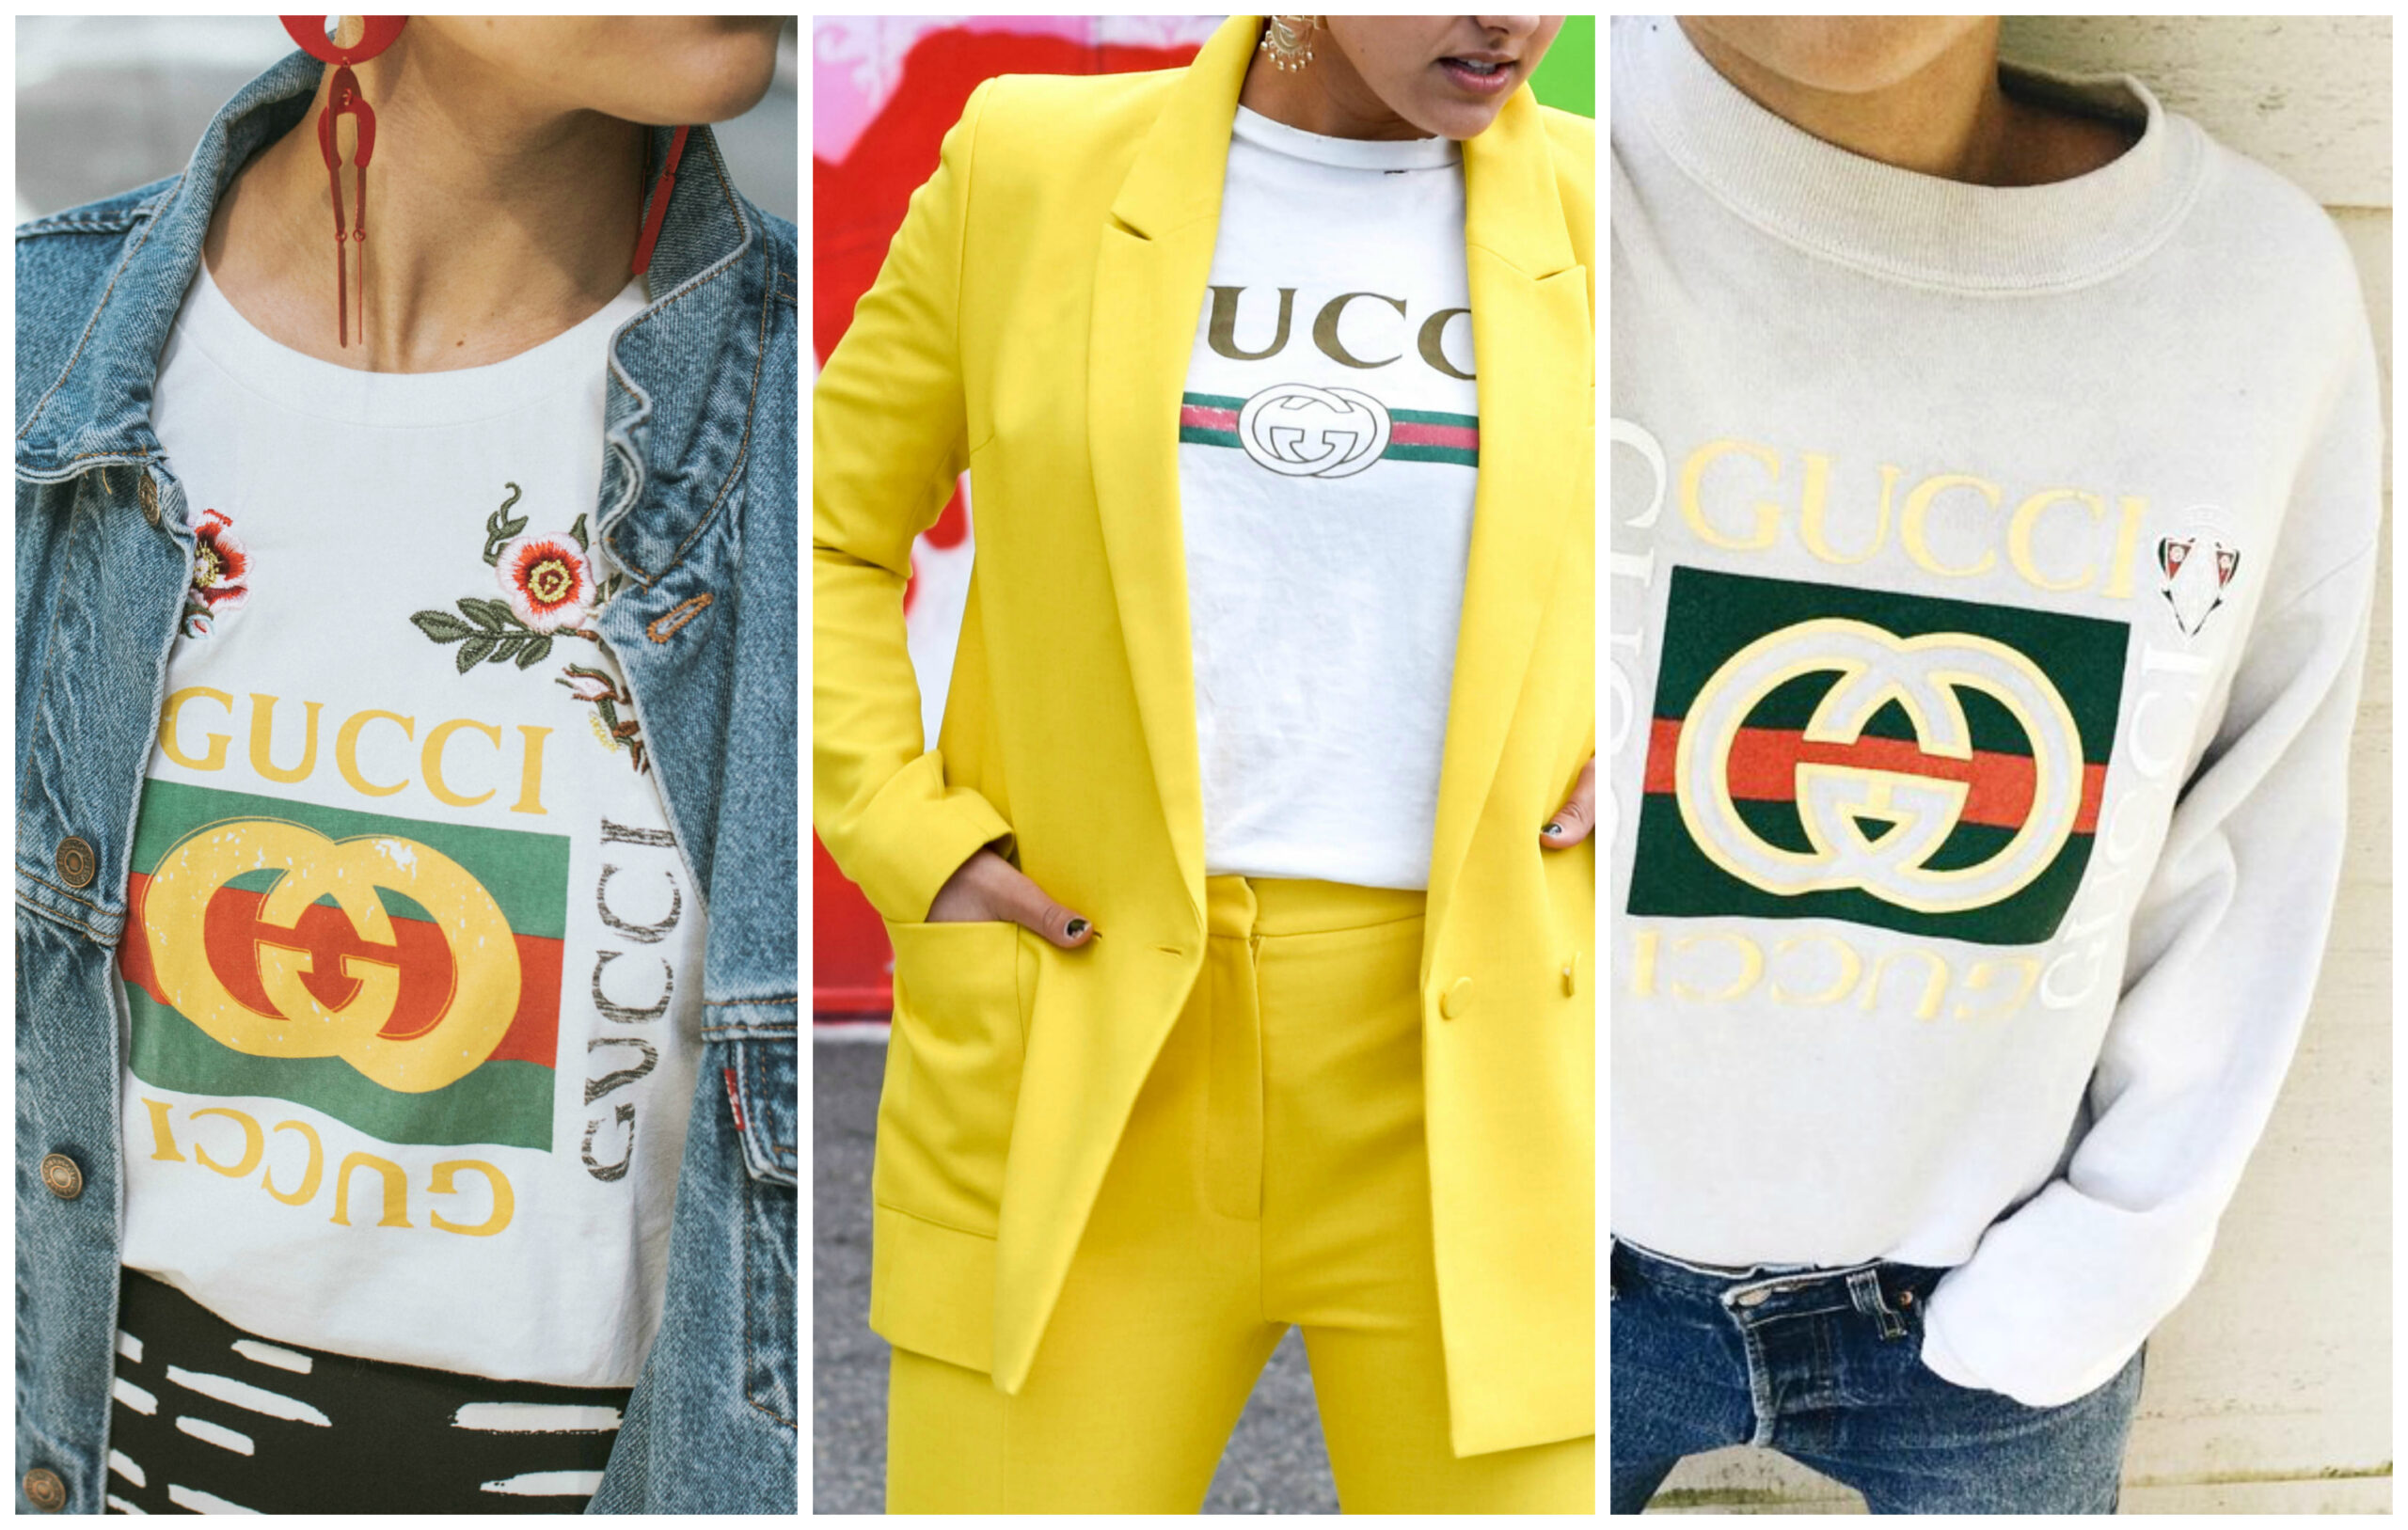 Bootleg Gucci: What it is and Where to Find it - BloggerNotBillionaire.com